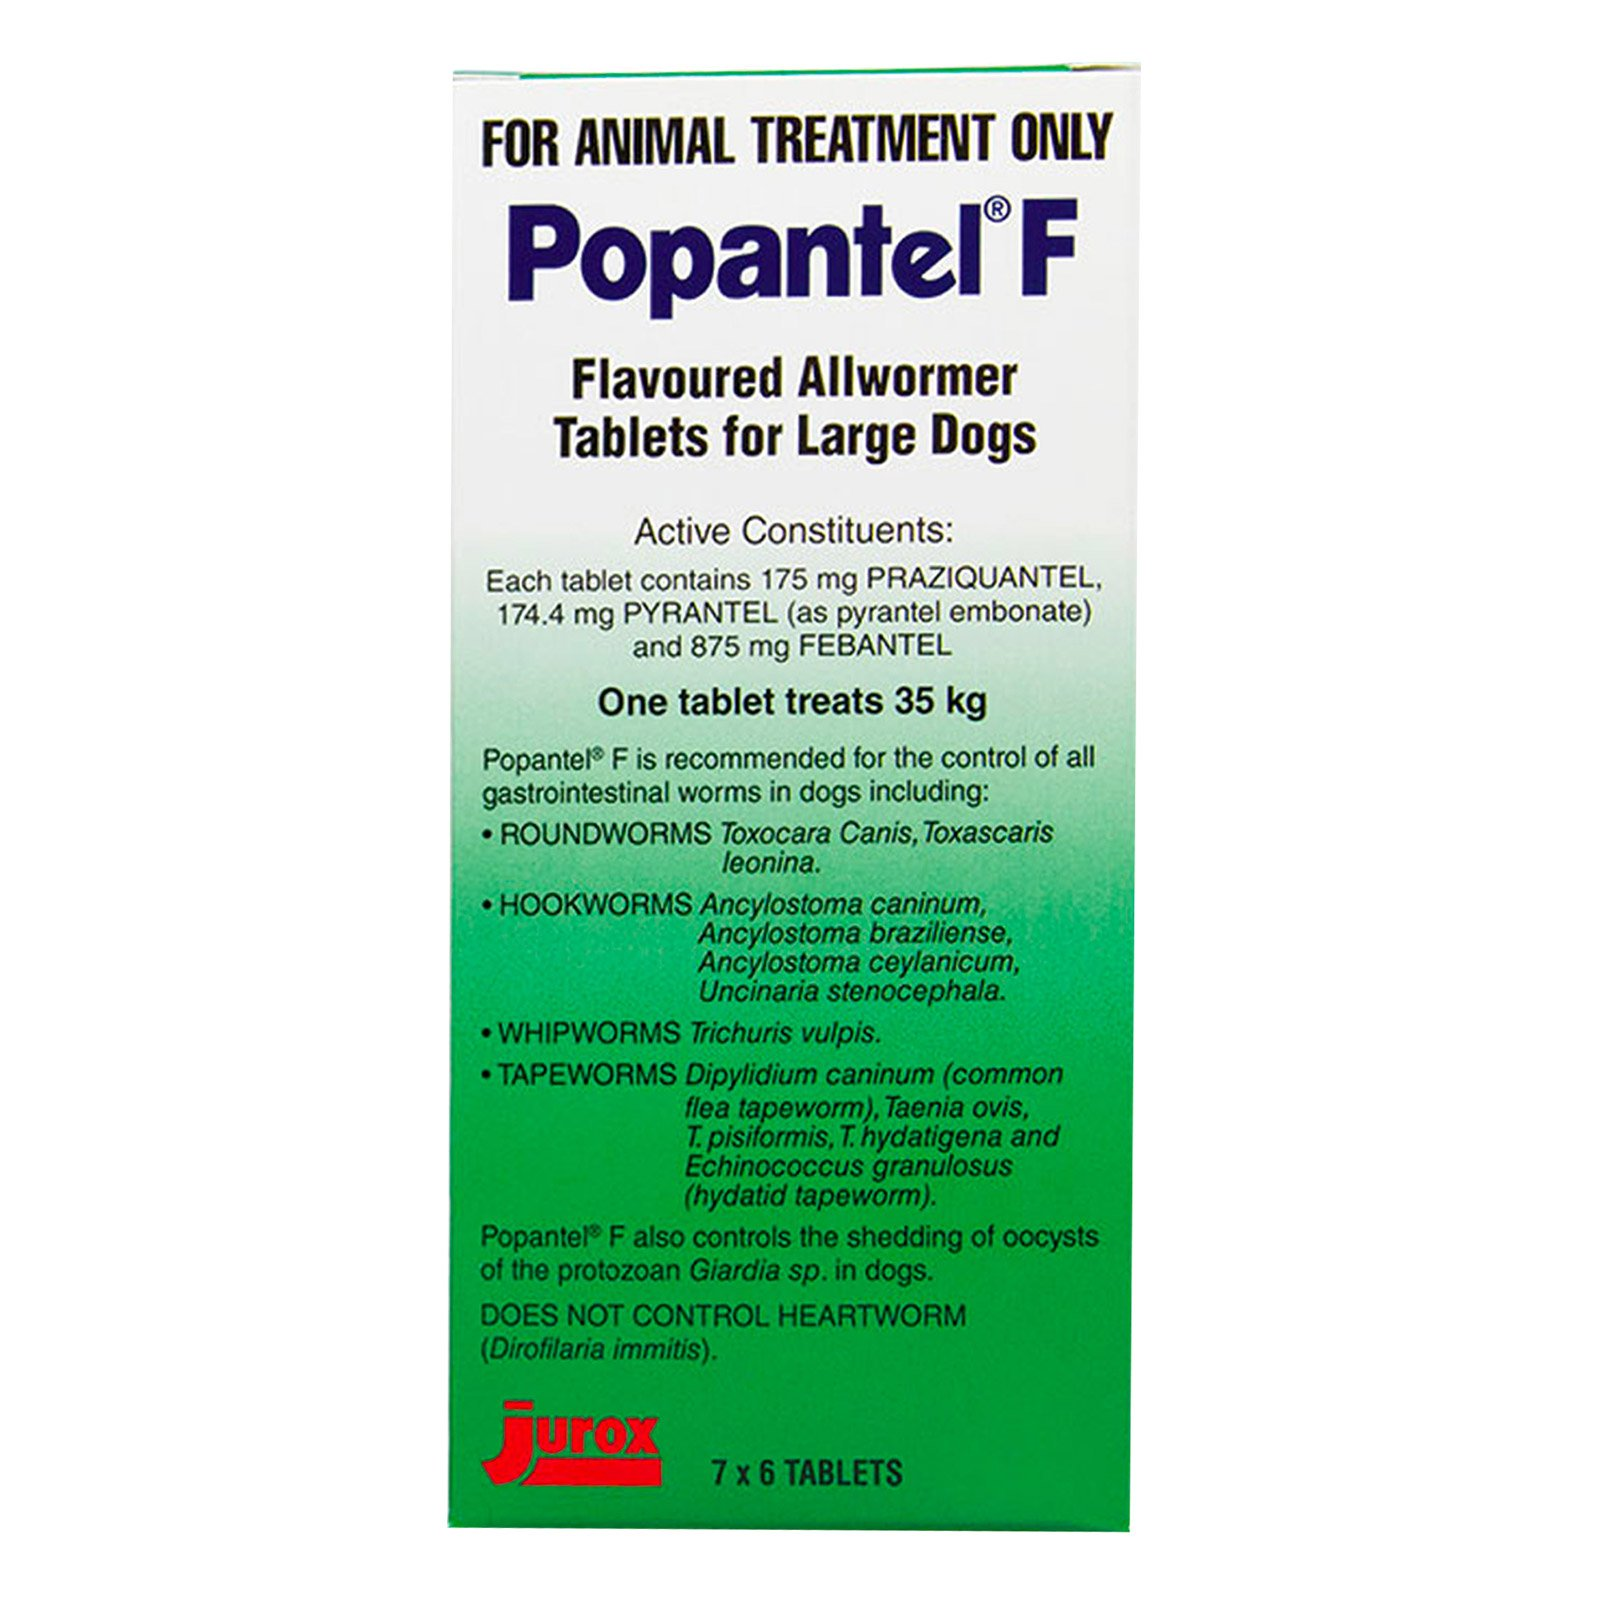 Popantel F Allwormer for Large Dogs (35 kg)